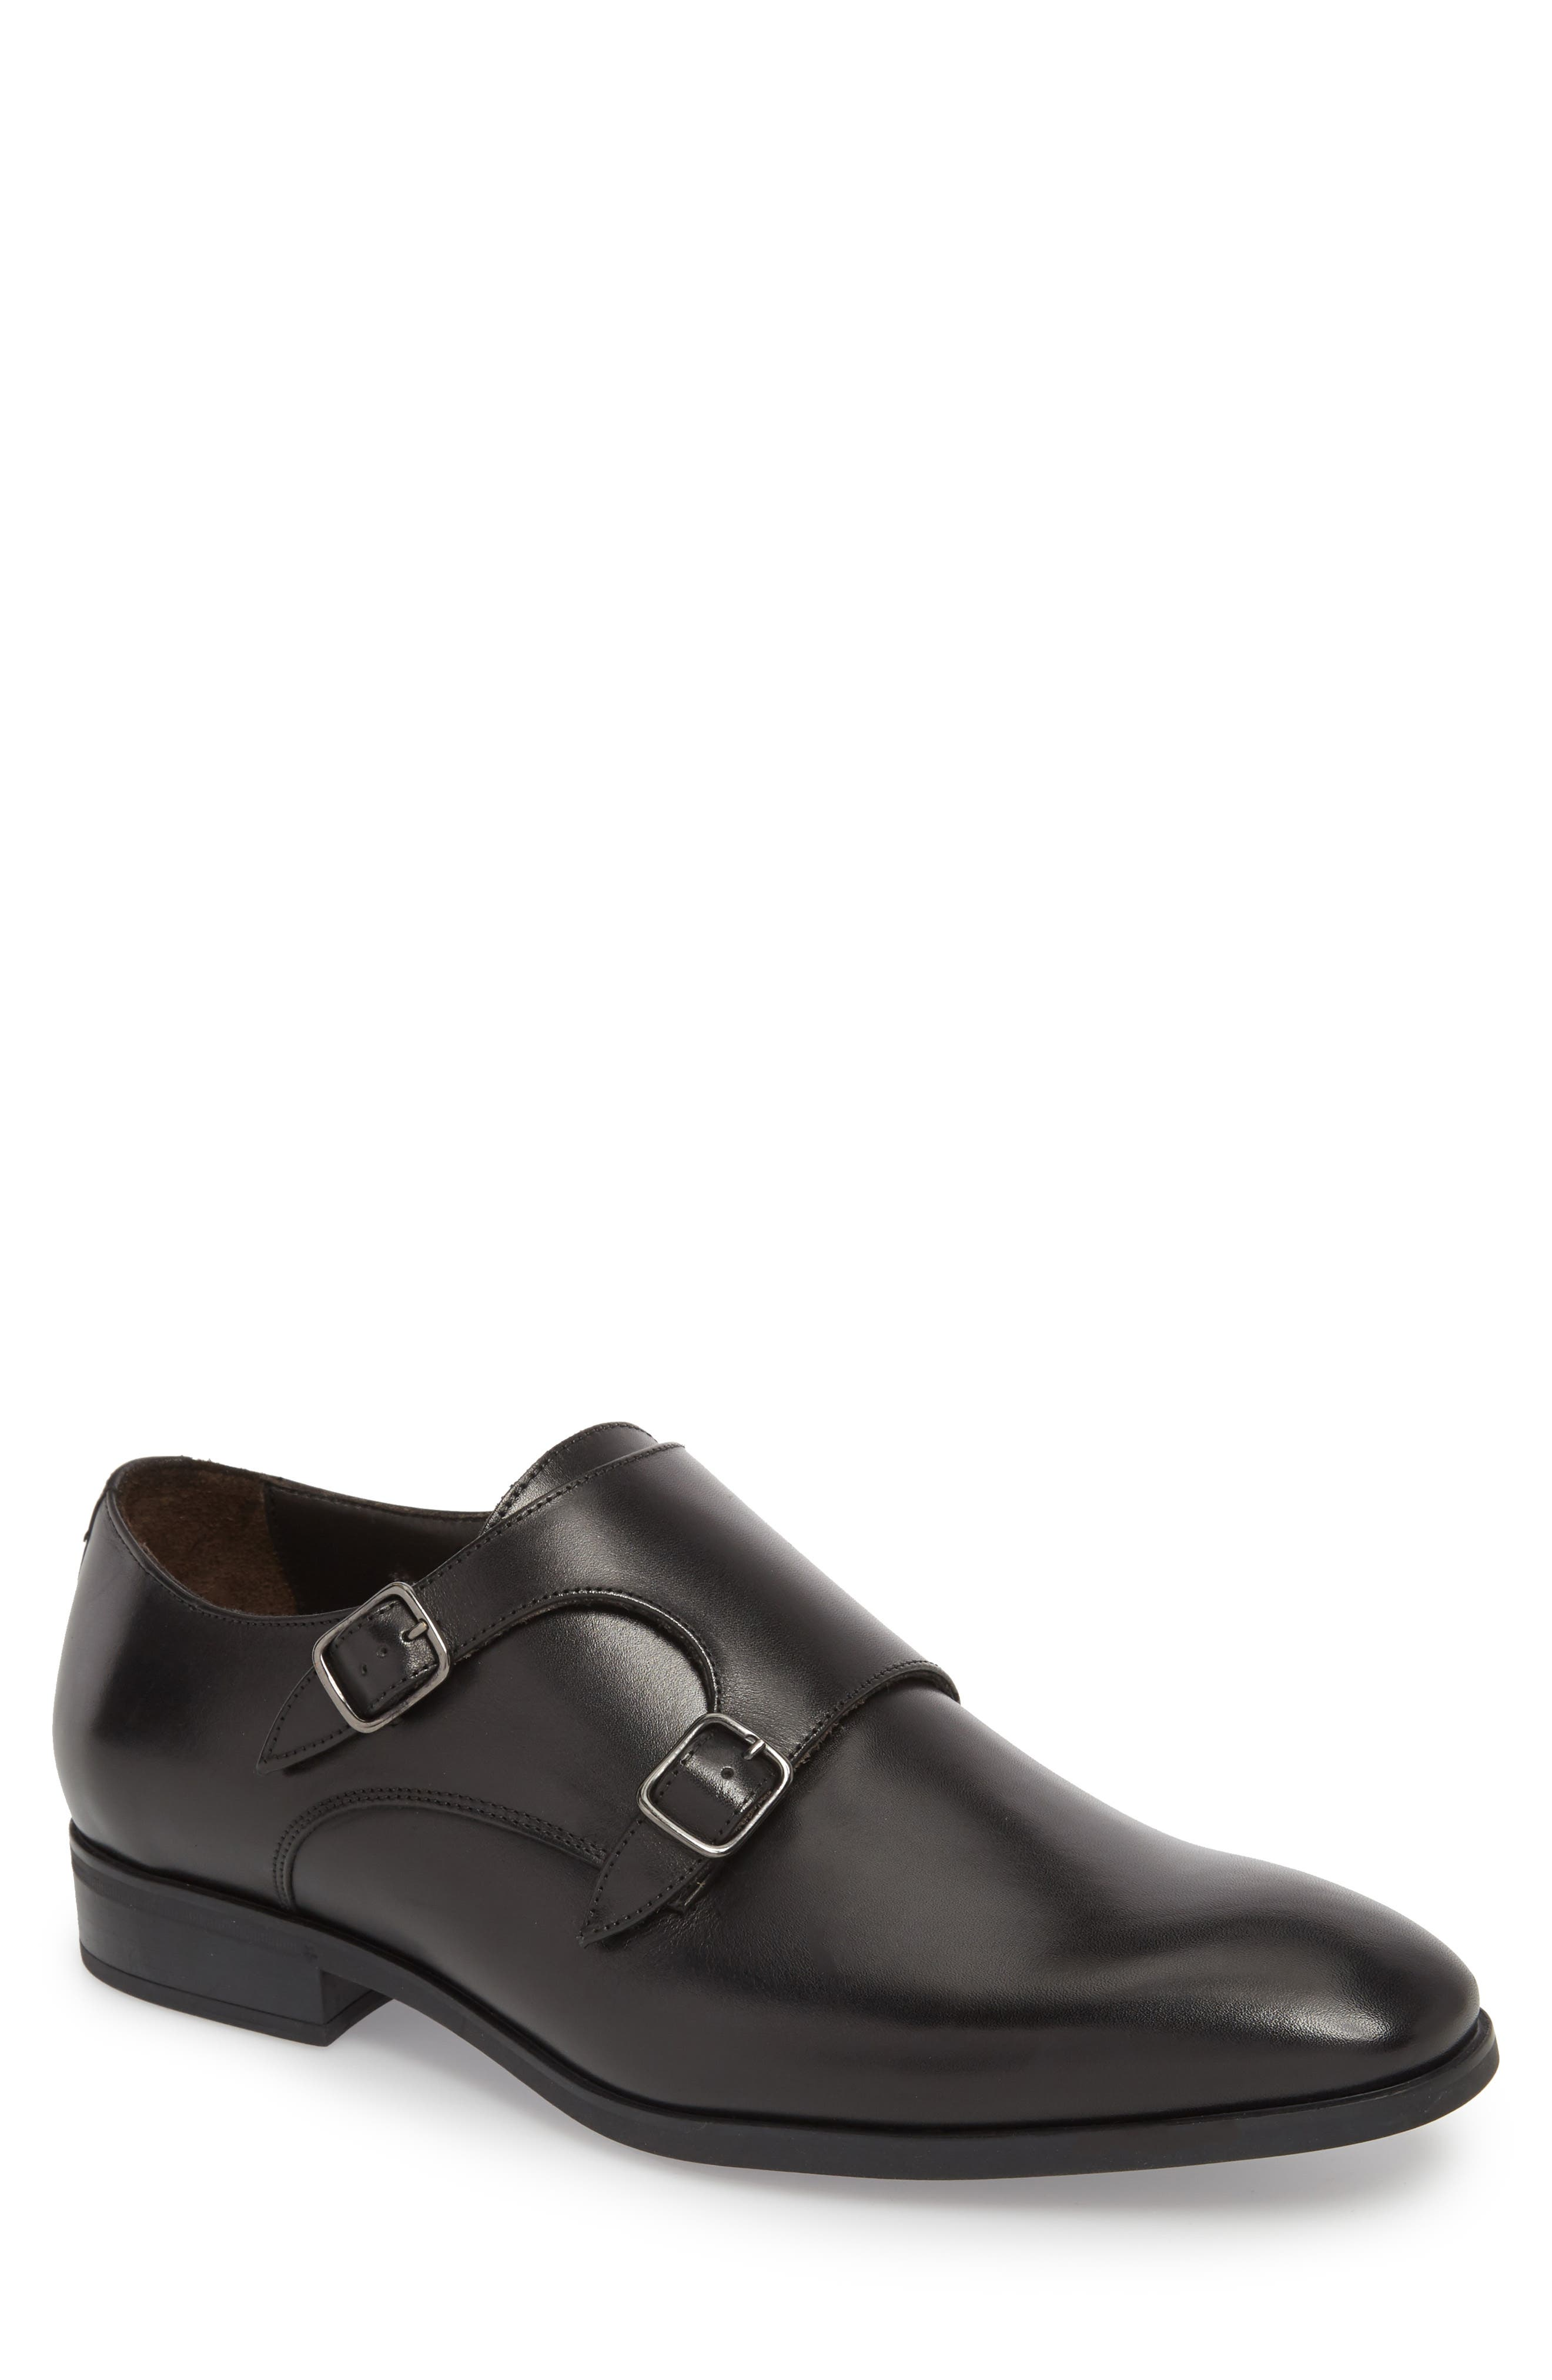 TO BOOT NEW YORK, Benjamin Double Monk Strap Shoe, Main thumbnail 1, color, 002